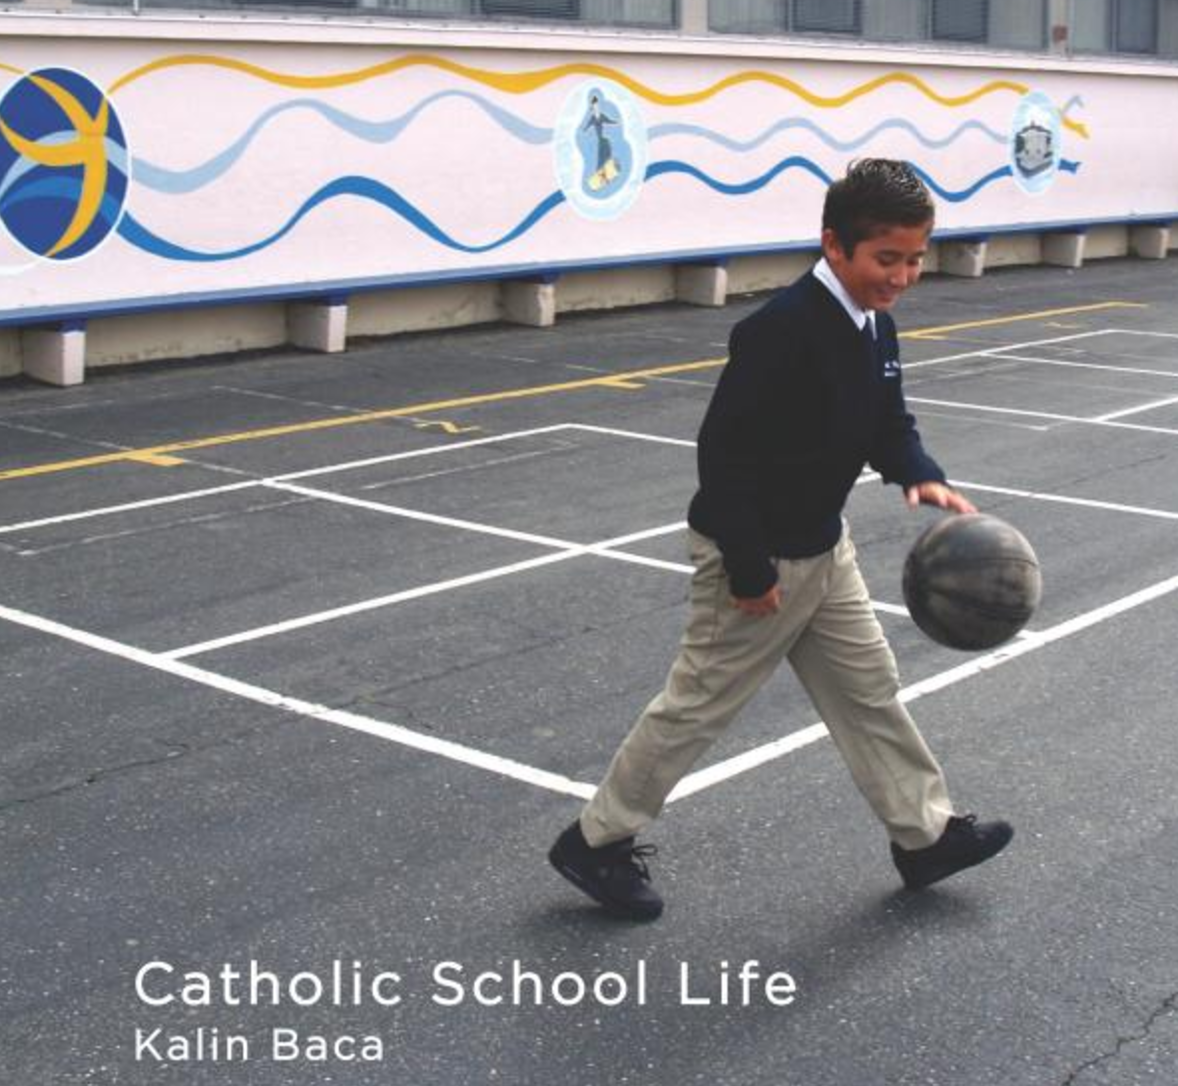 Catholic School Life   A typical day for Kalin Baca begins with picking out the same clothes every morning - his uniform. Kalin reflects on how it feels to be a fifth-grade student living the Catholic School Life.   Buy this book.